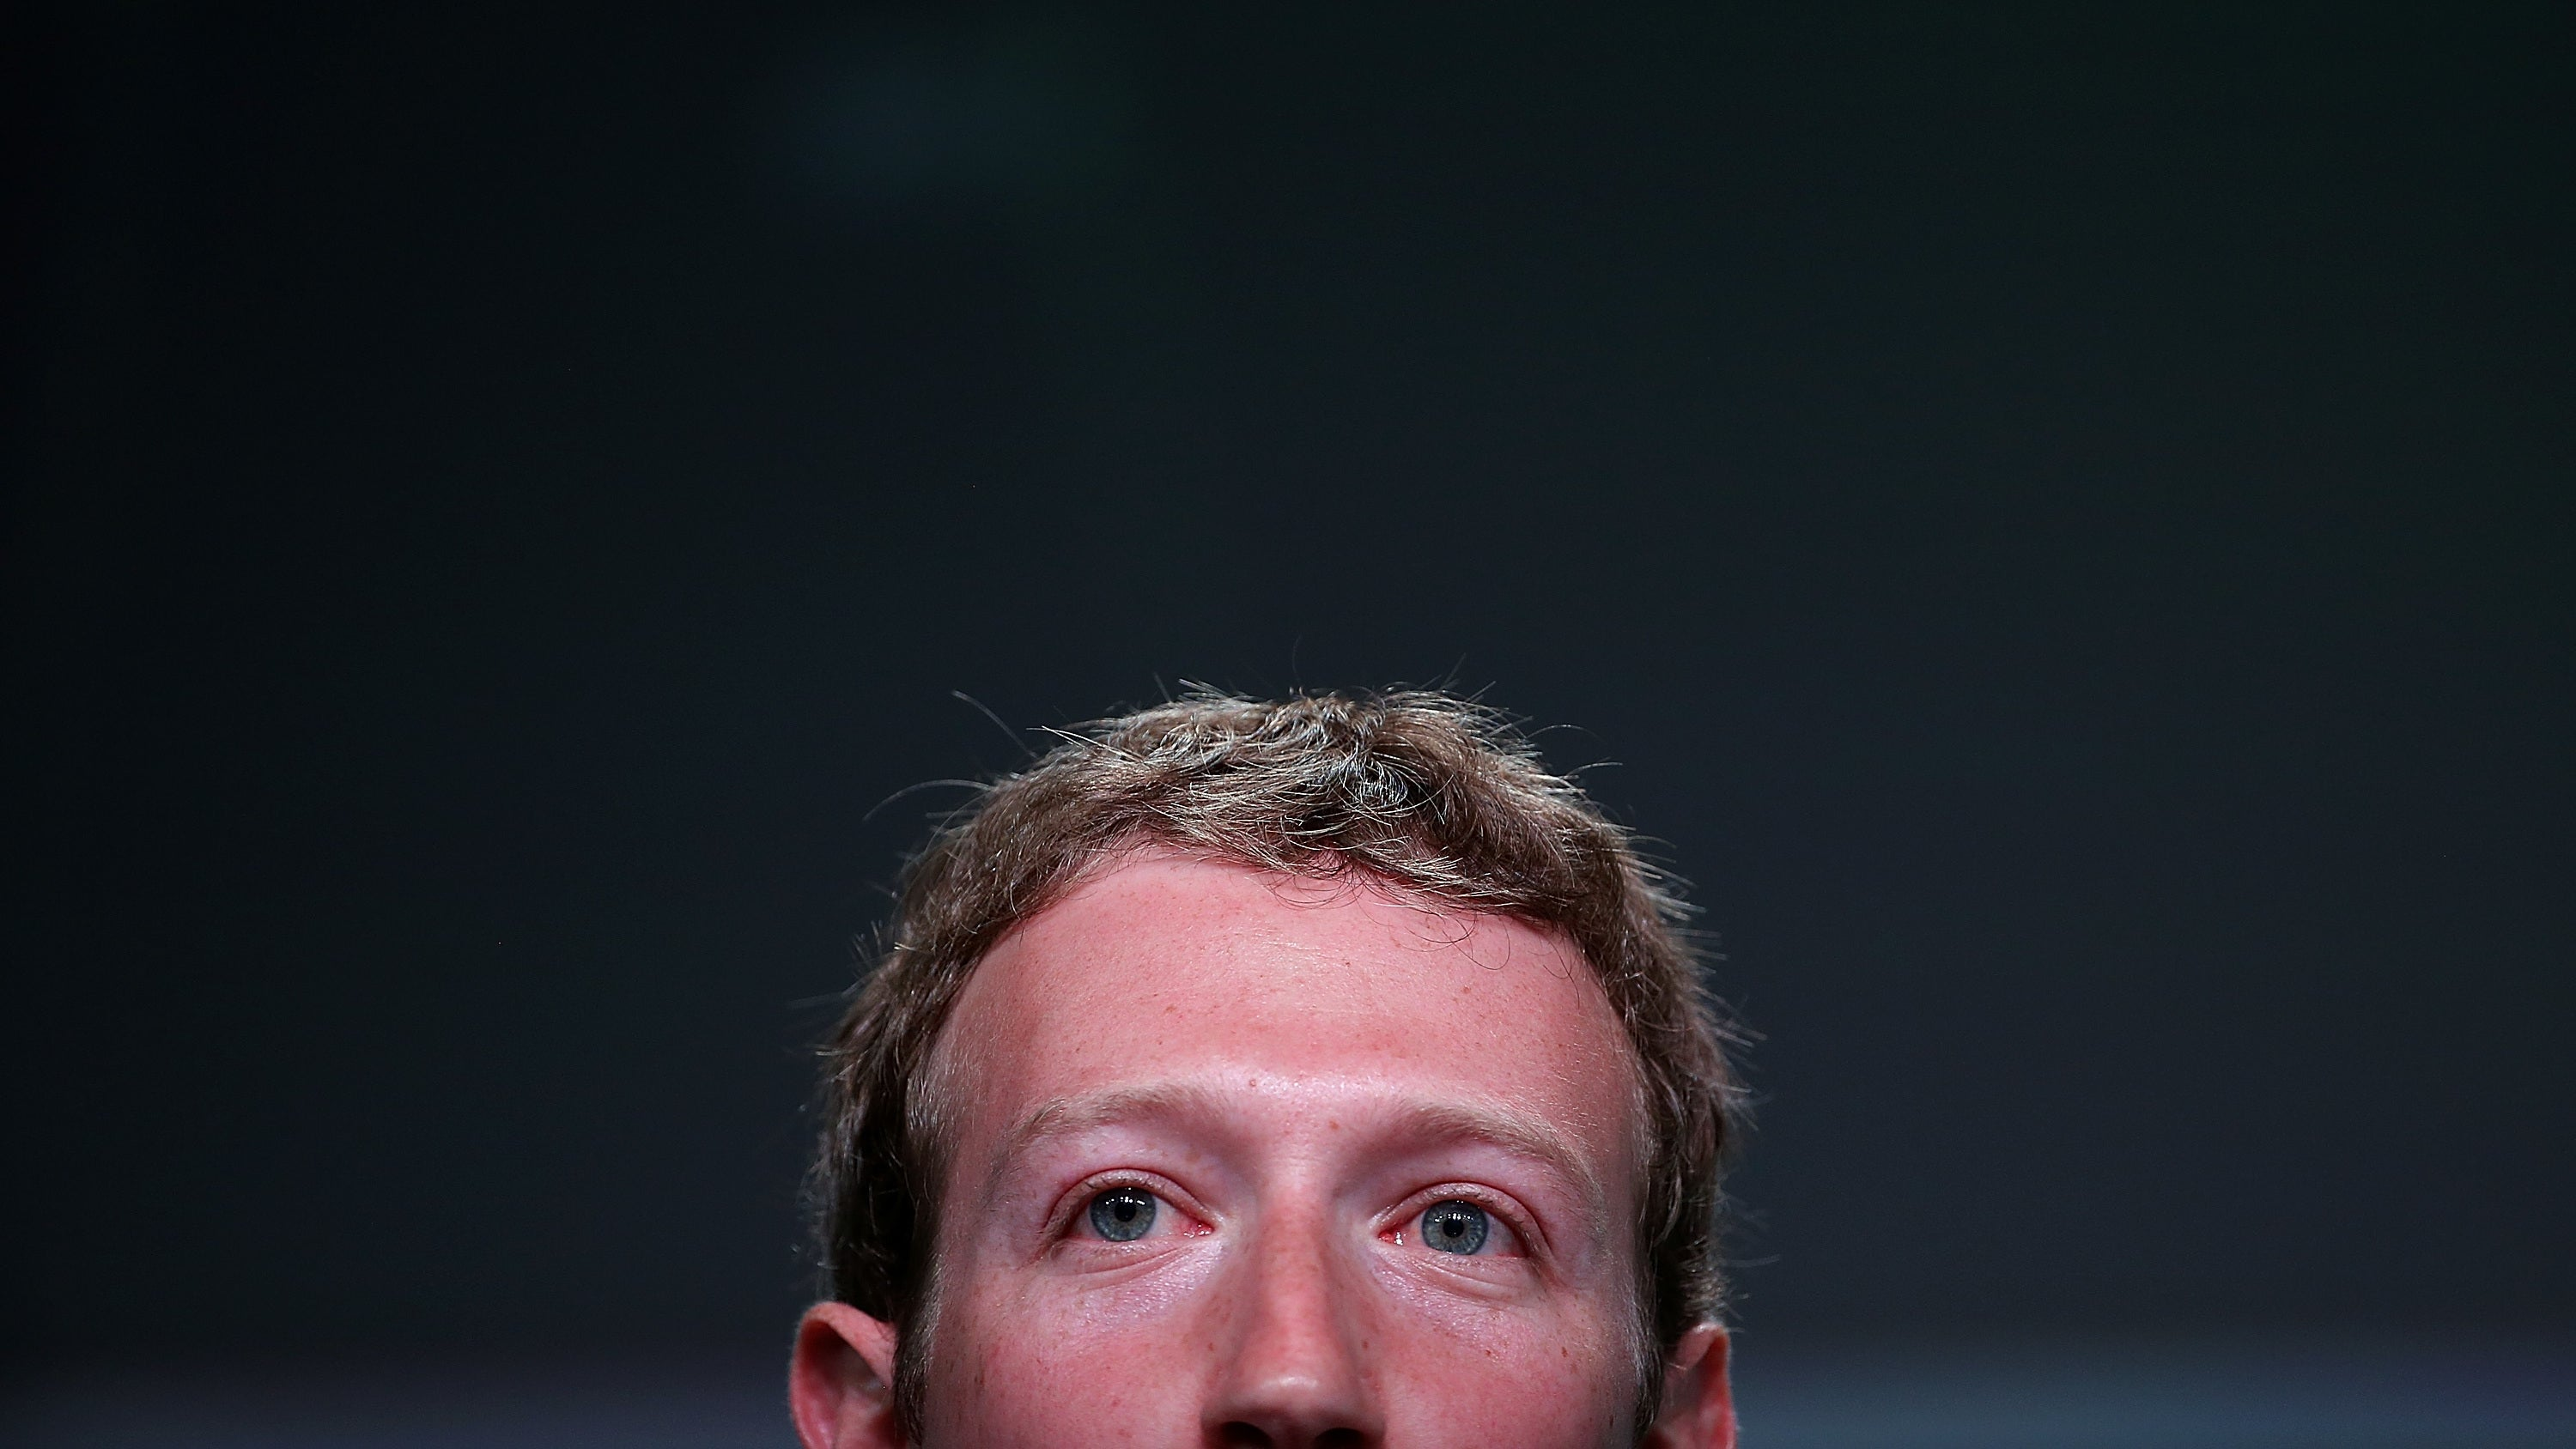 We Should Stop Expecting Mark Zuckerberg To Show Up